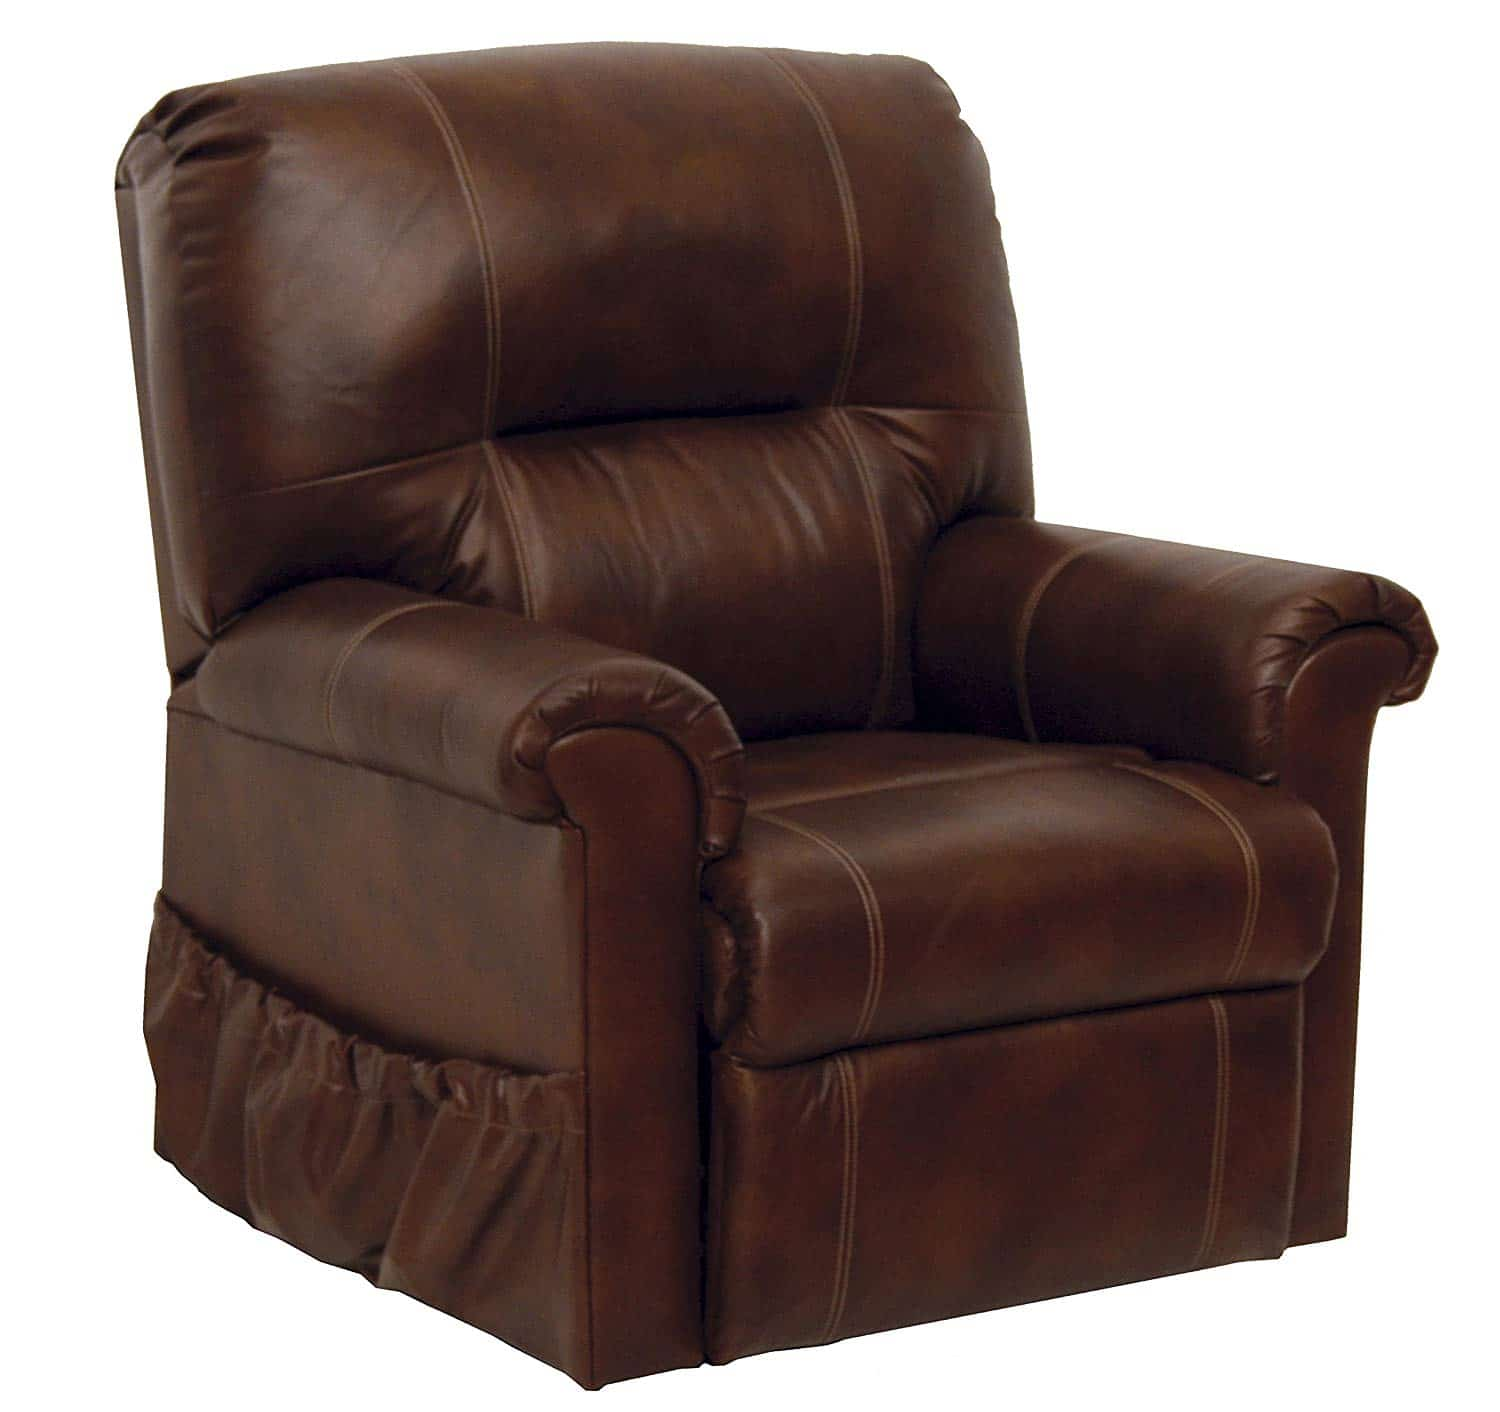 Catnapper Chair Catnapper Recliner Reviews Cuddly Home Advisors